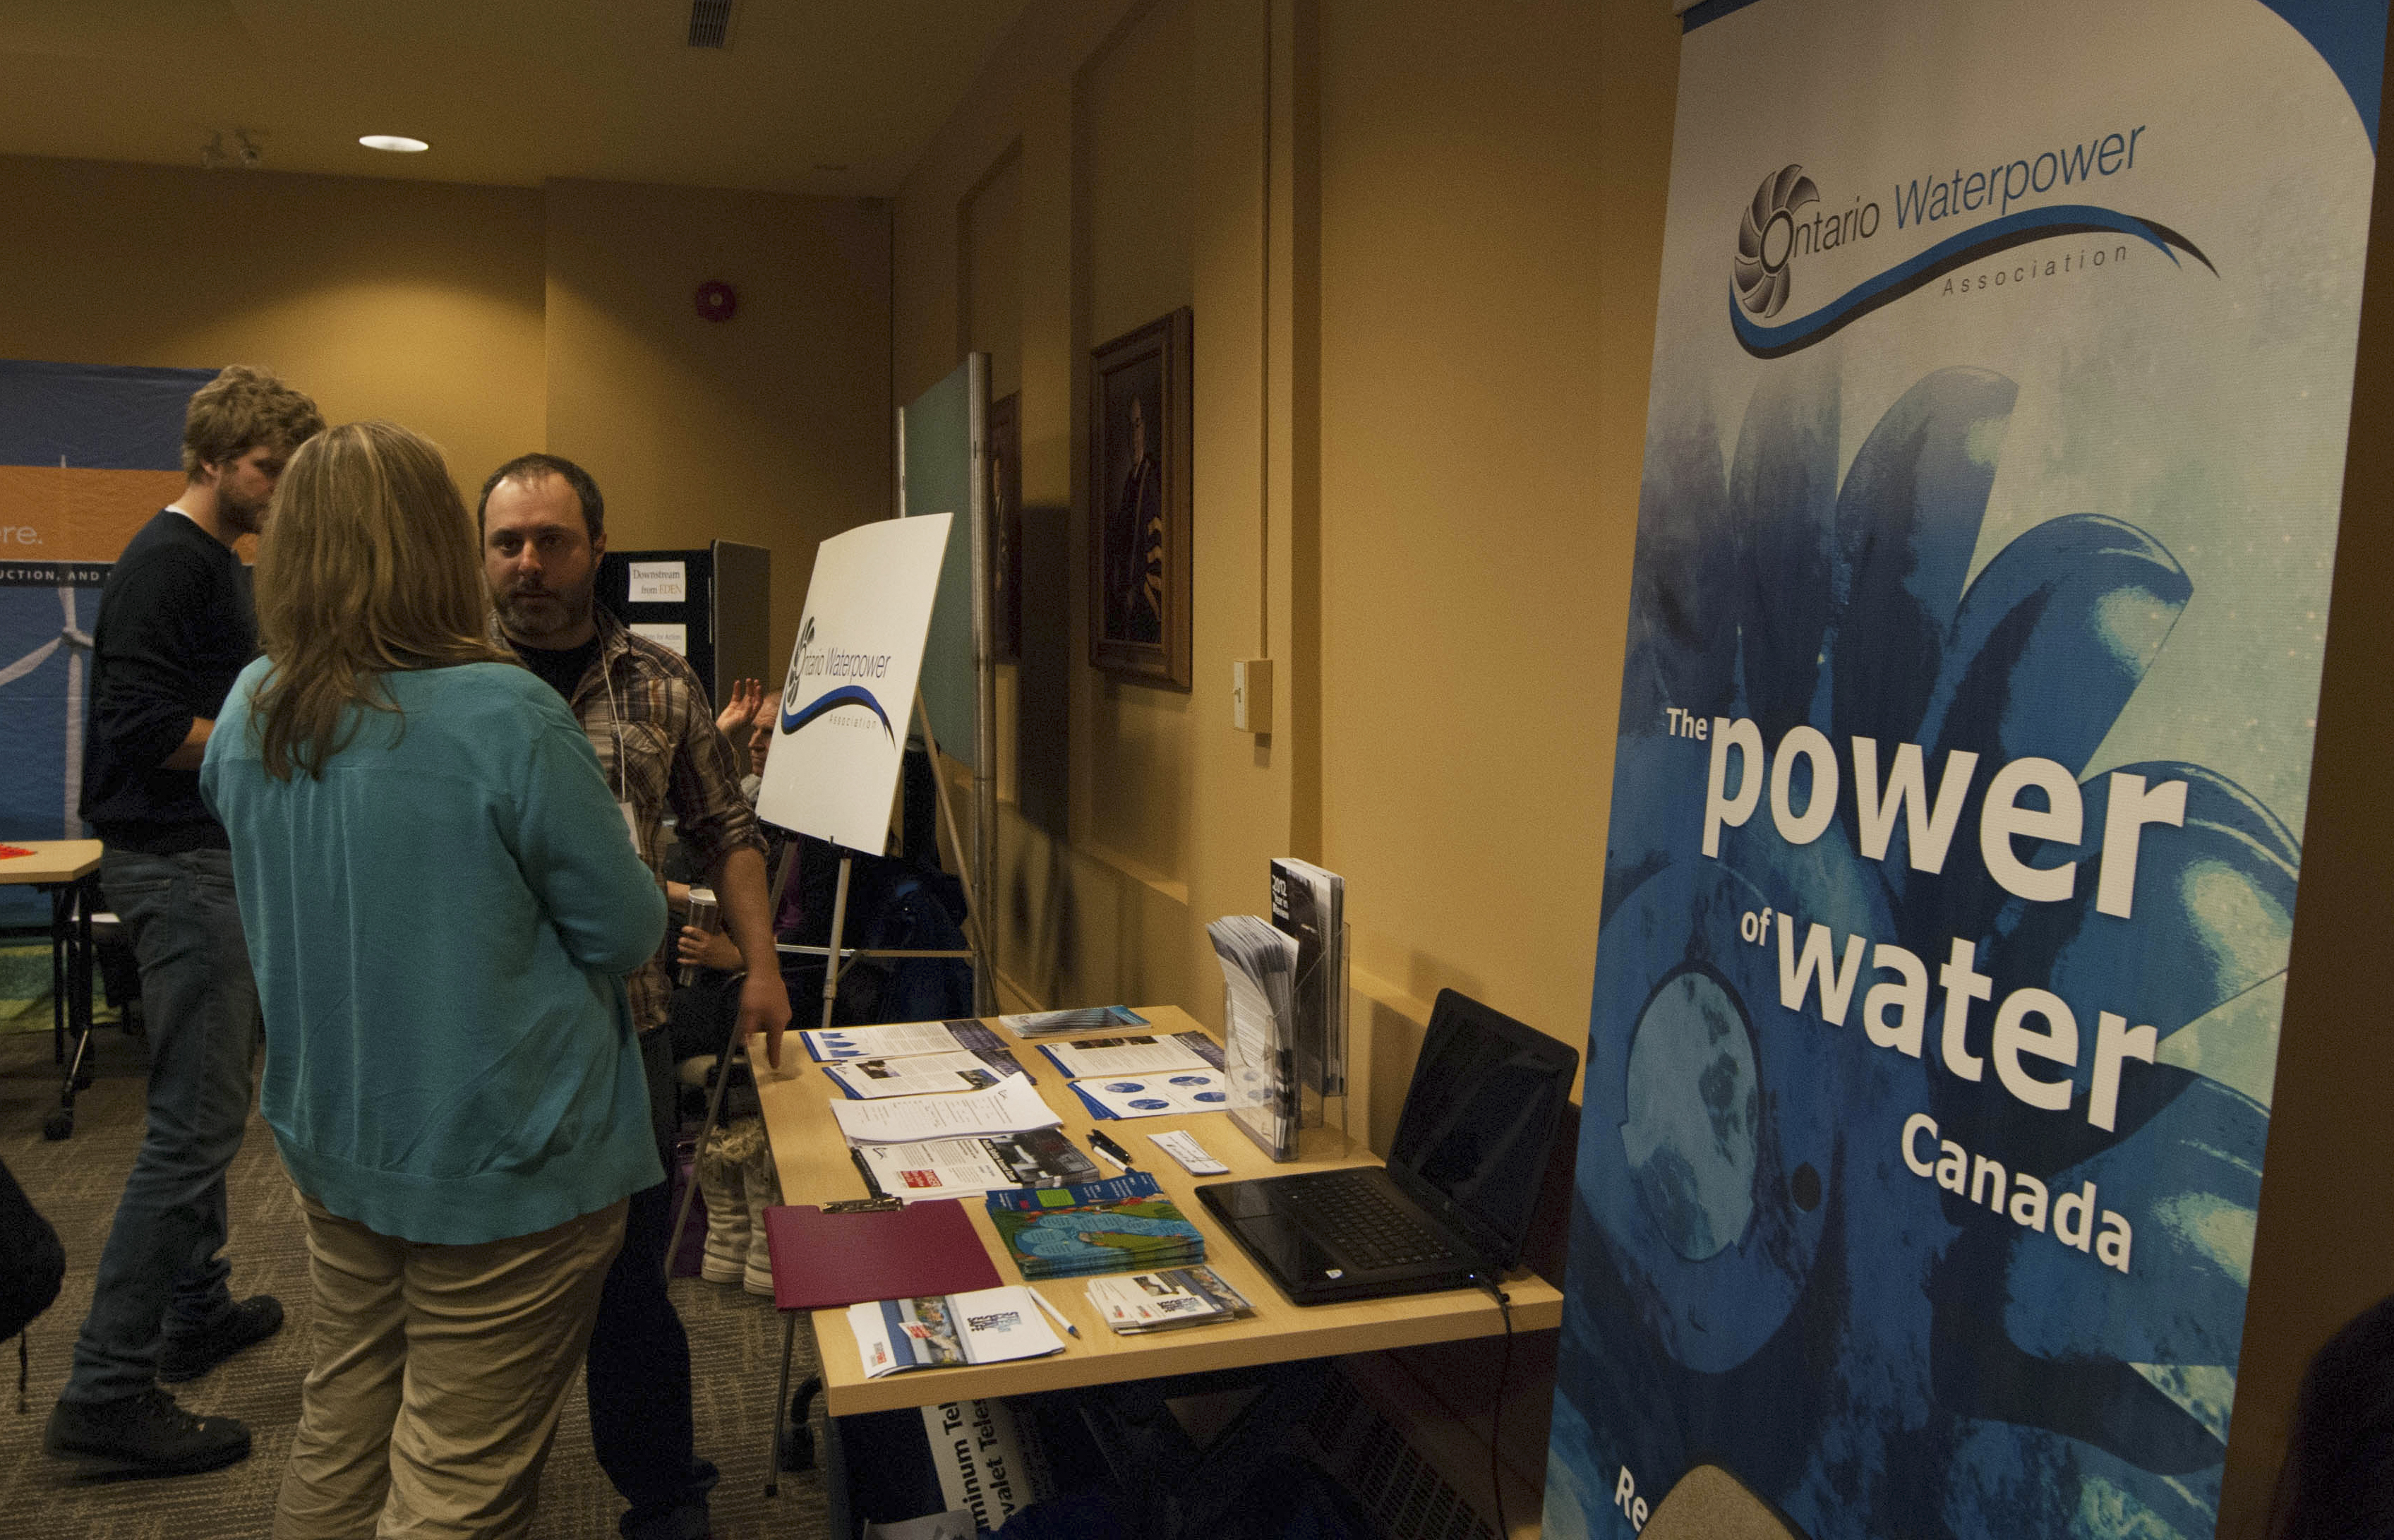 Discussing the policies behind water supplies